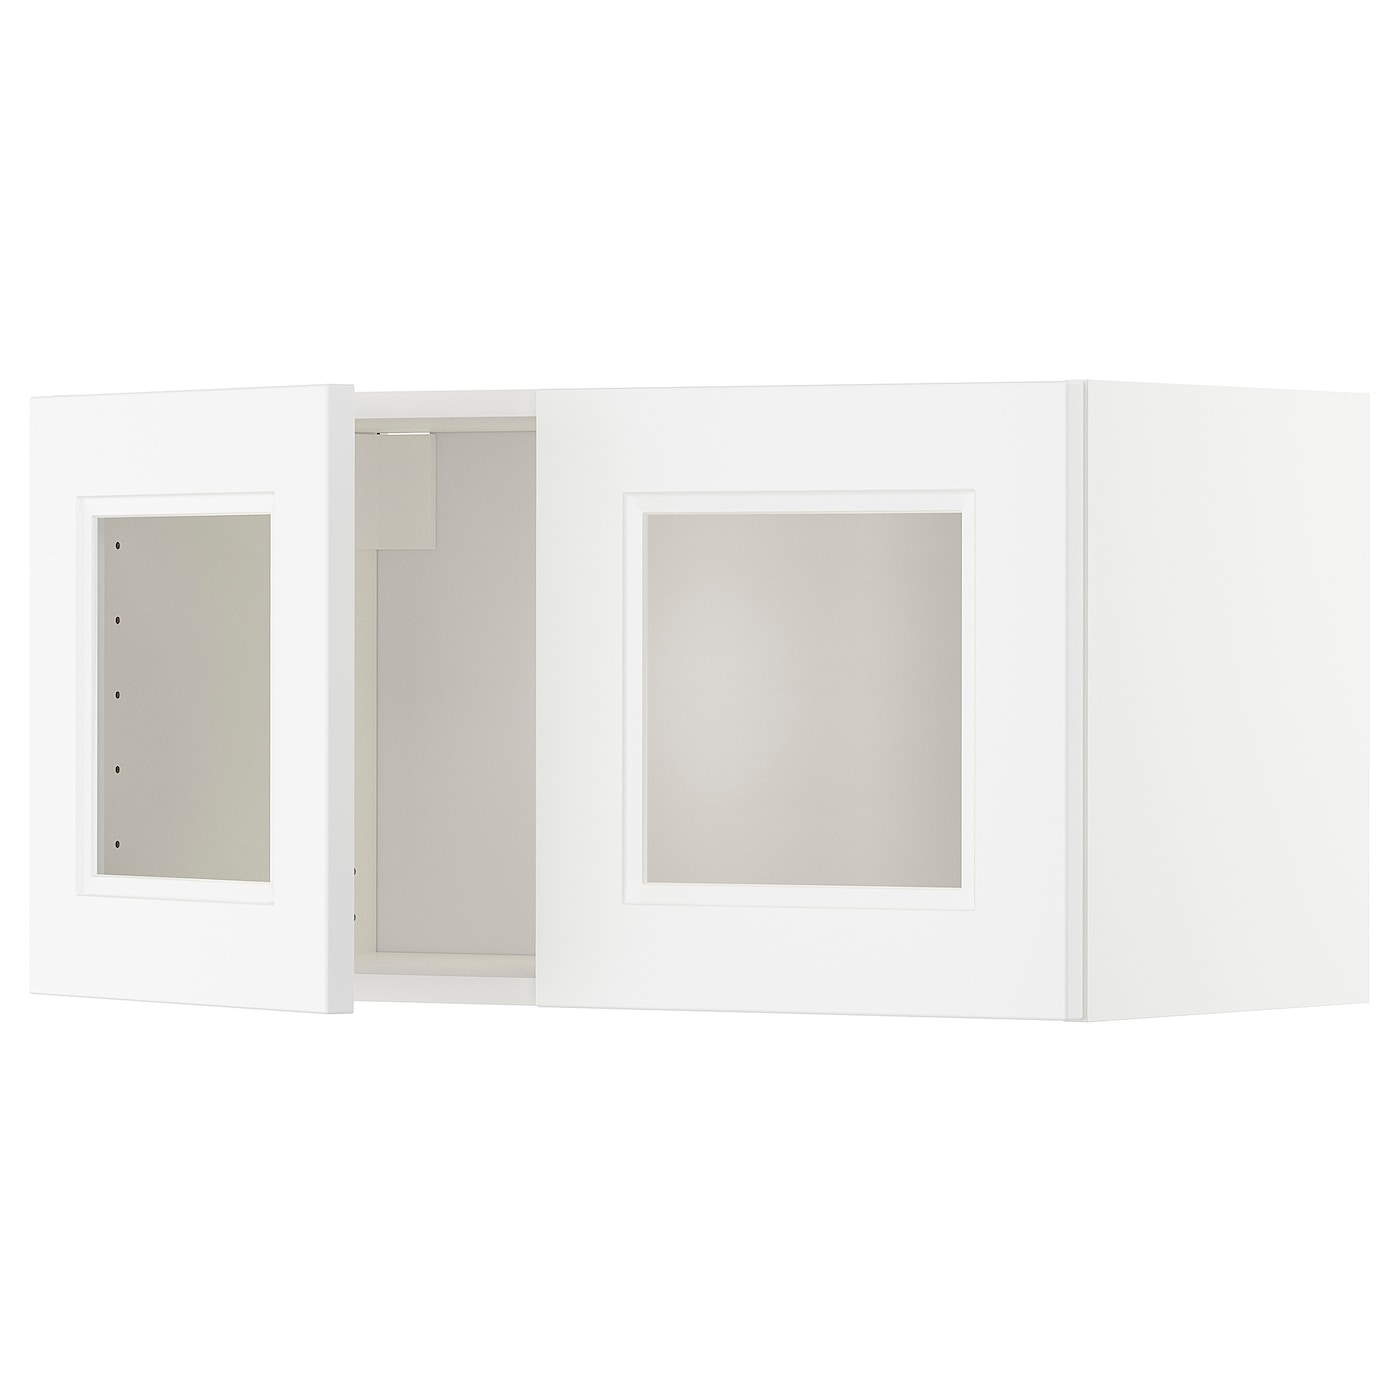 IKEA METOD wall cabinet with 2 glass doors Sturdy frame construction, 18 mm thick.